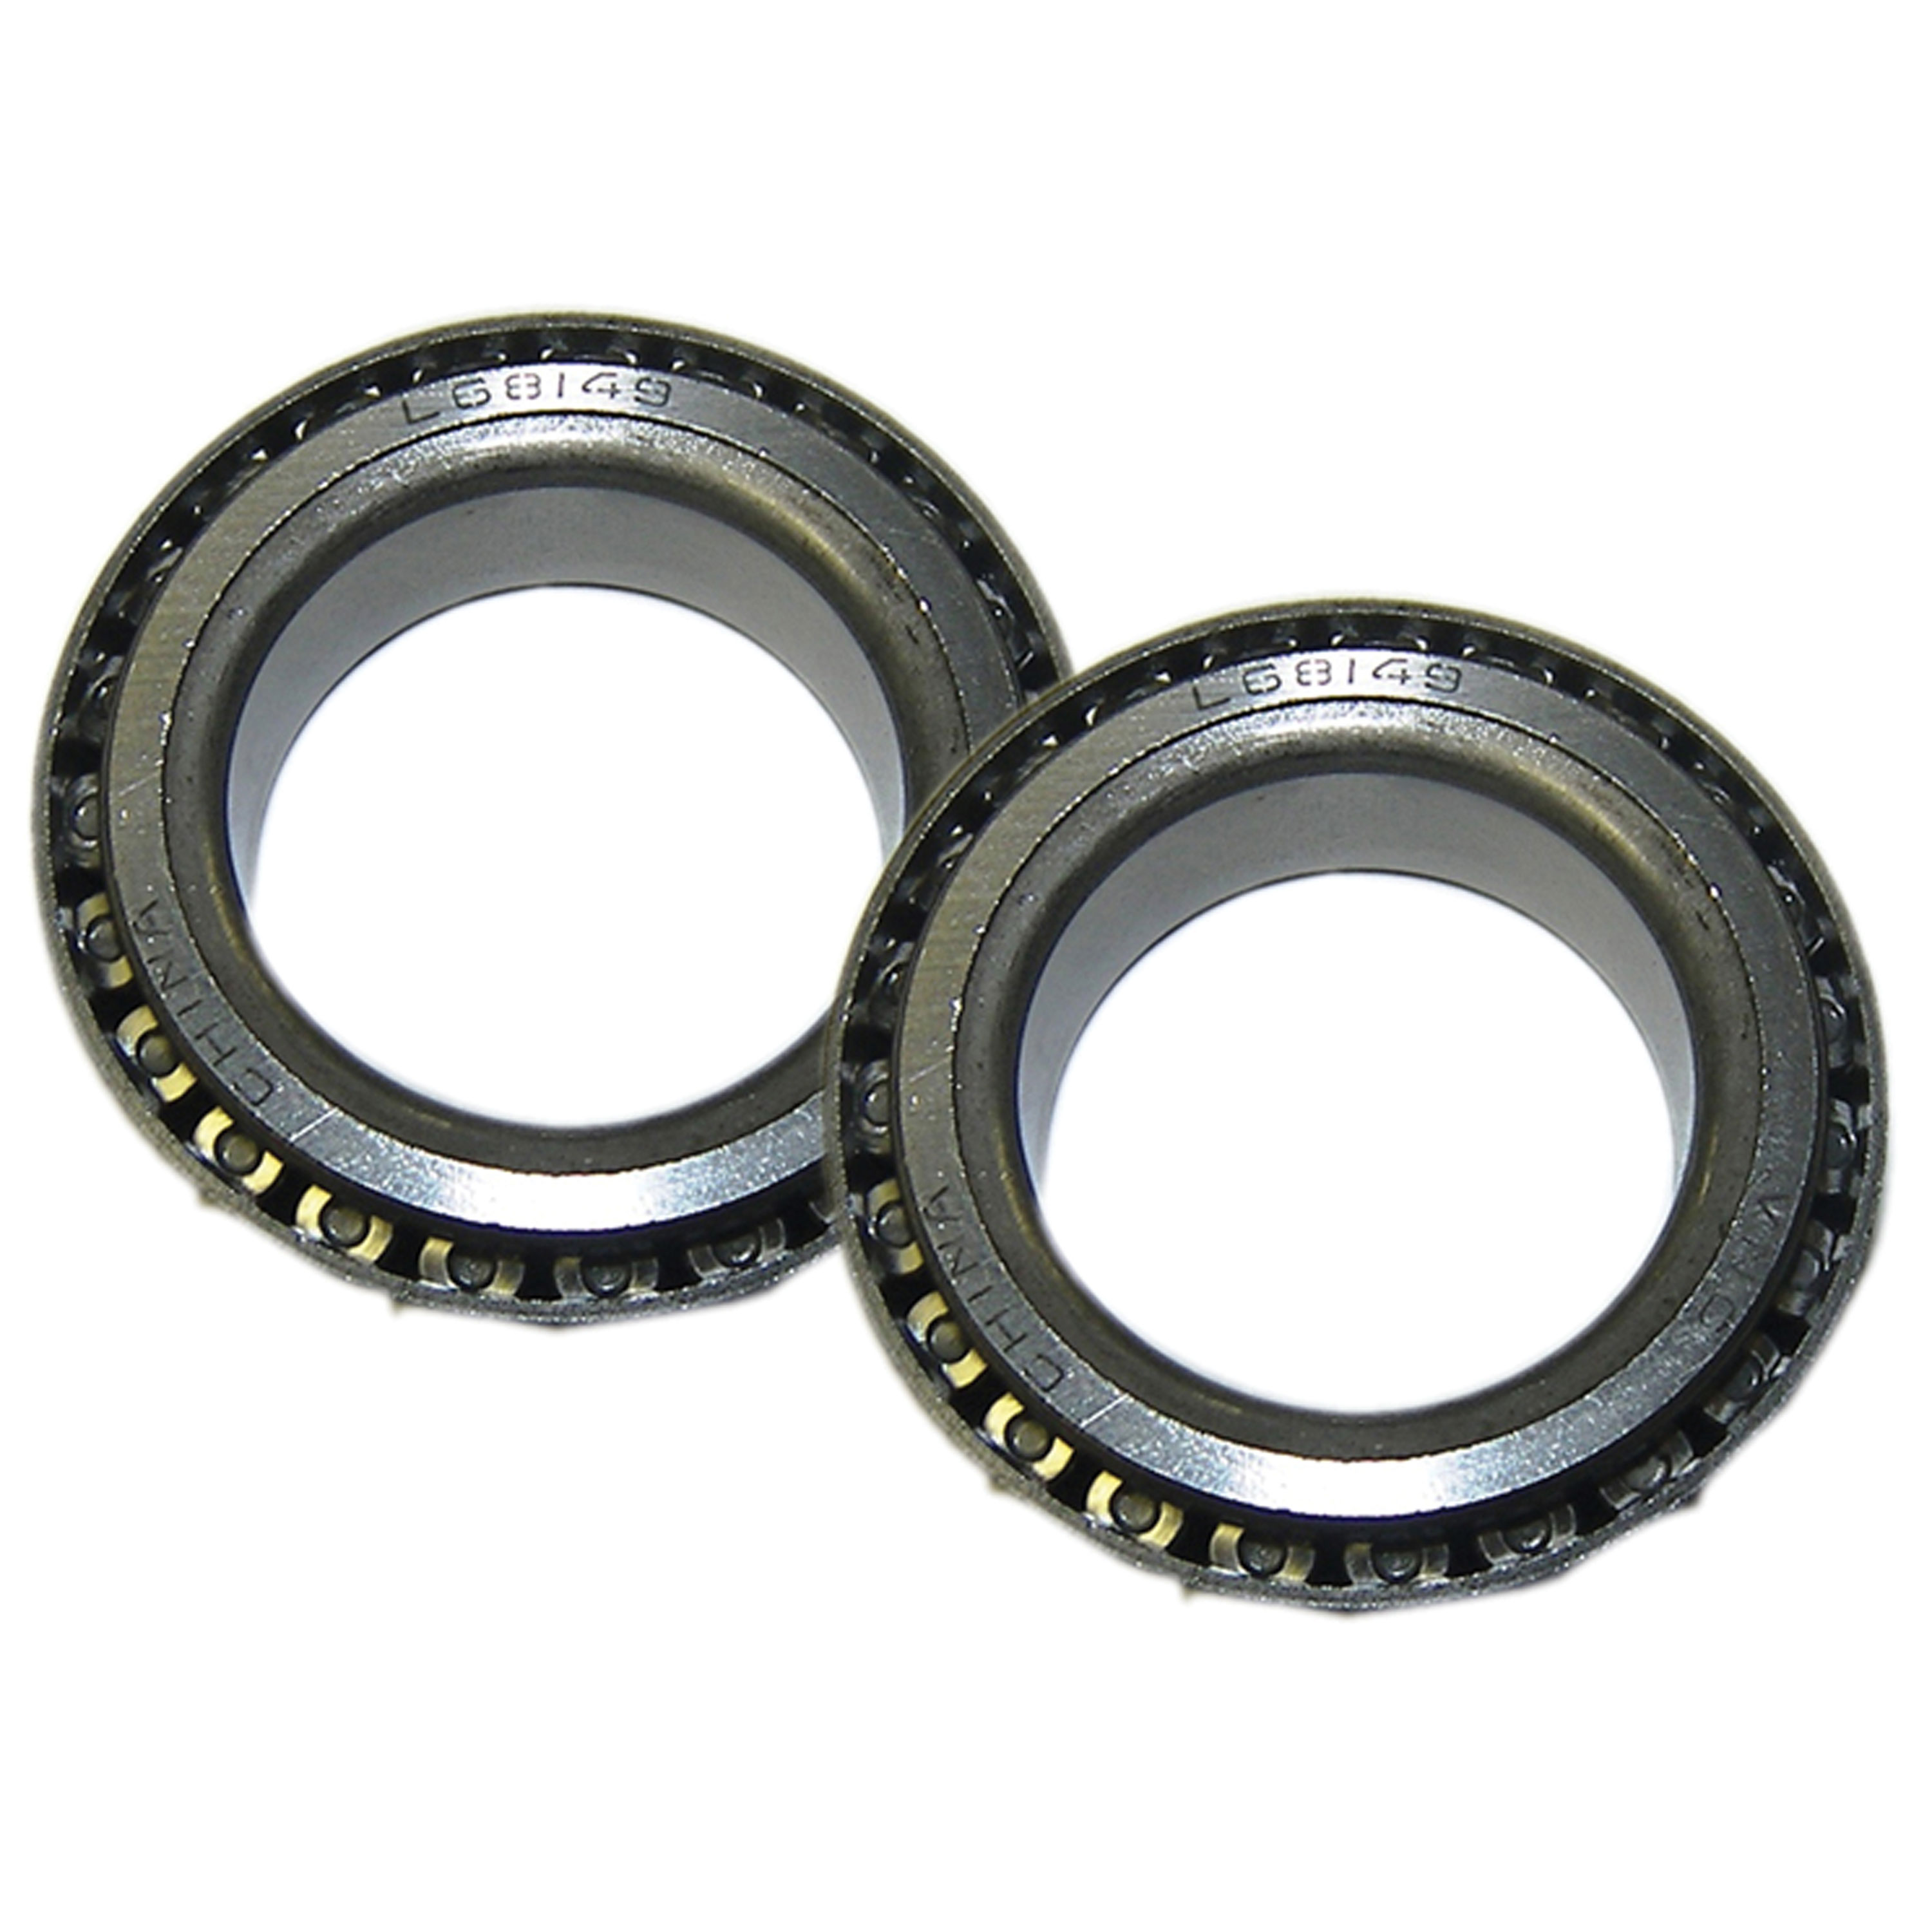 AP Products 014-122092-2 Inner Bearing L-68149 Pack of 2 by AP Products